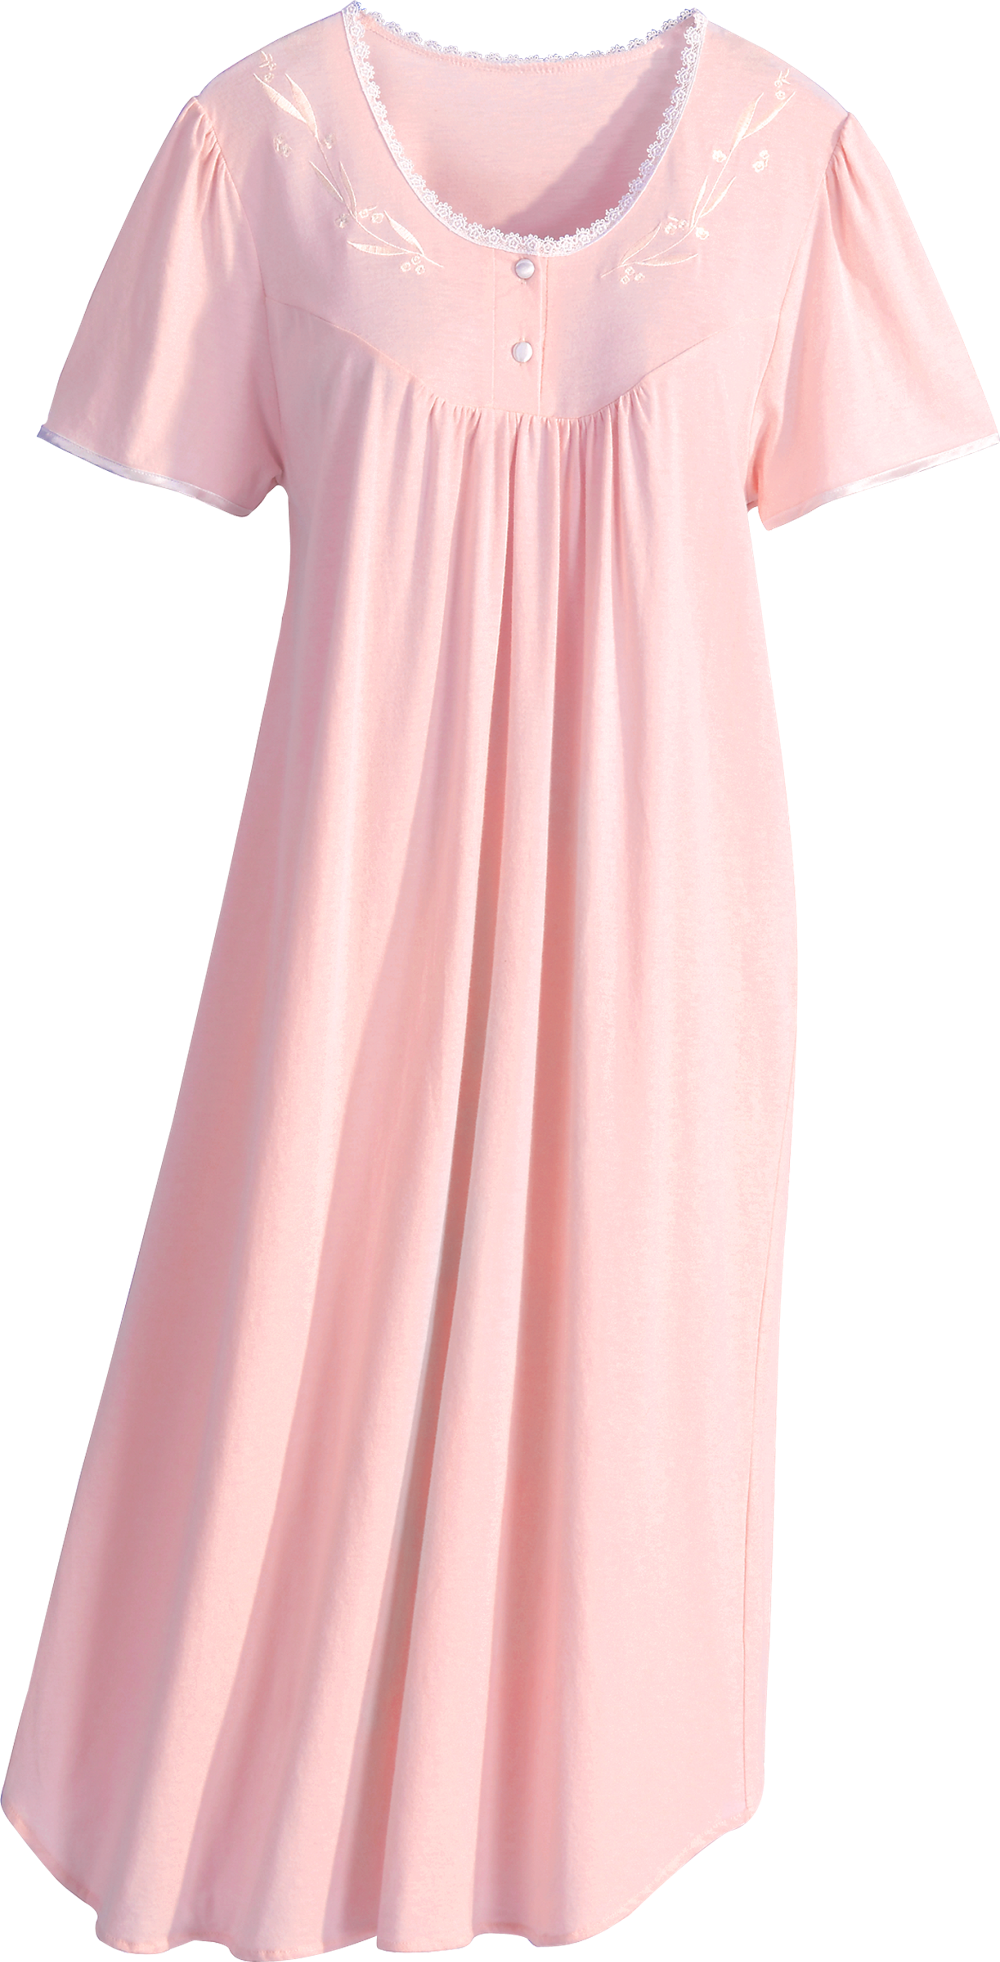 518dec8803 Combed cotton knit nightgown is a sumptuously soft knit. Incredibly  comfortable cotton nightgown is trimmed with lace and satin.